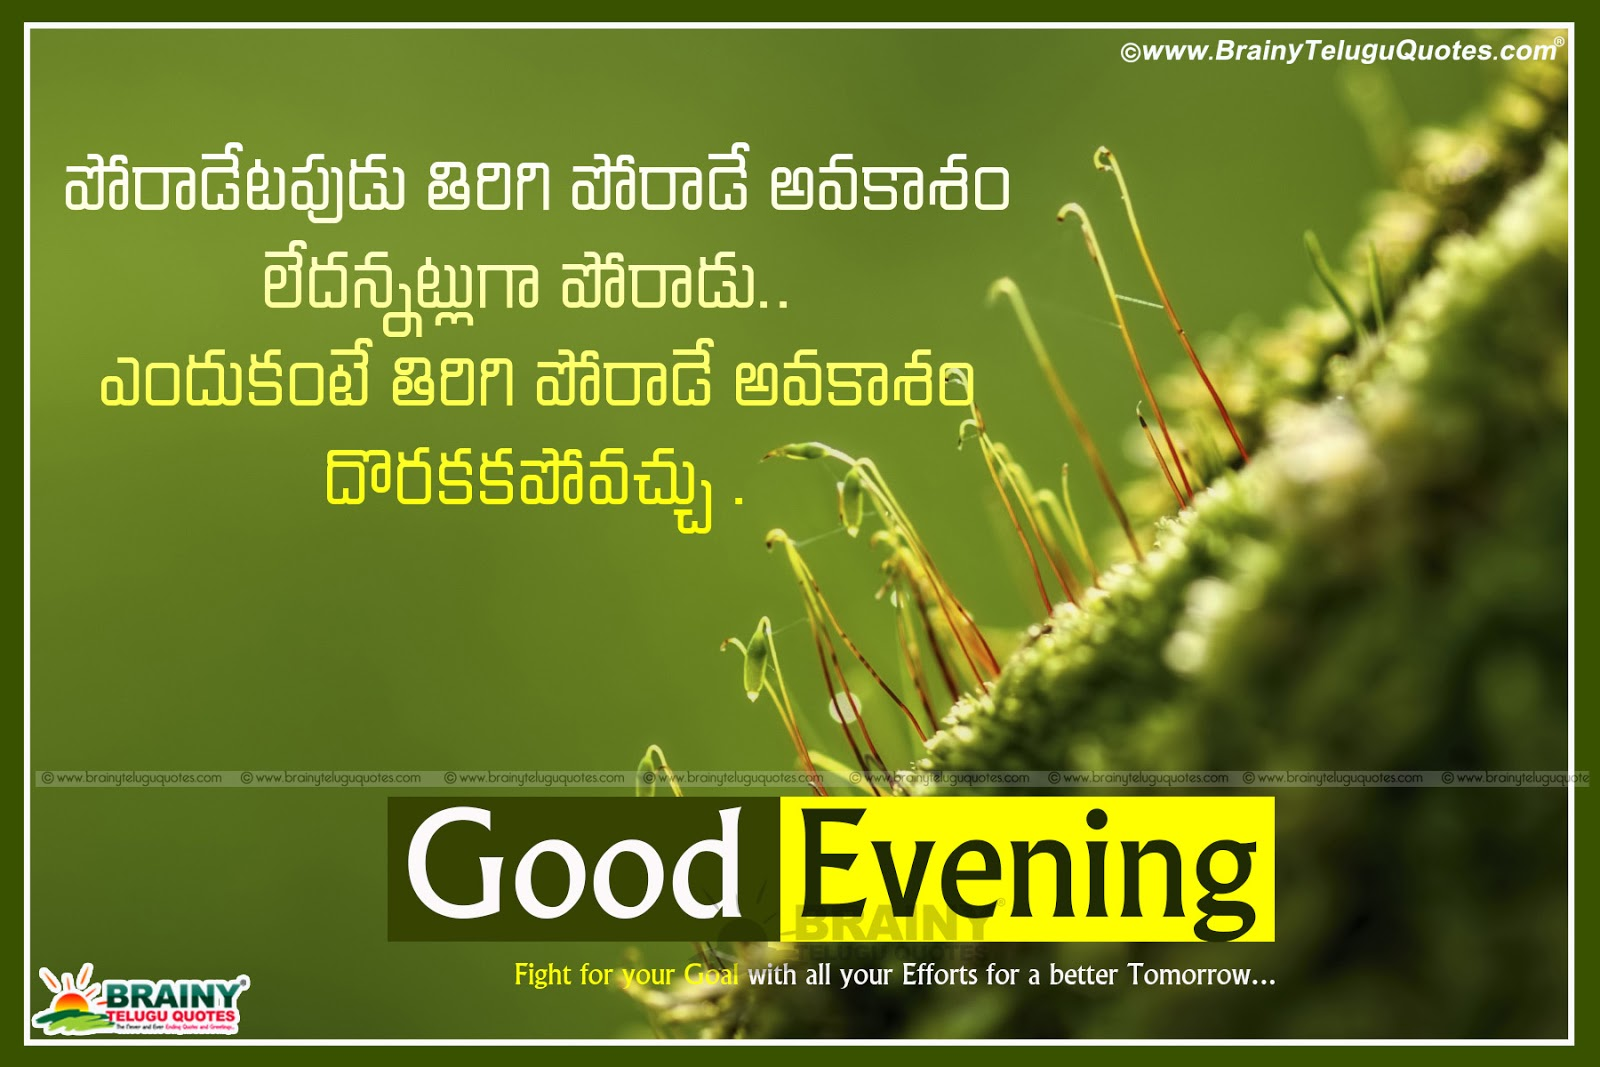 Good Evening Quotes In Kannada Good Quotes